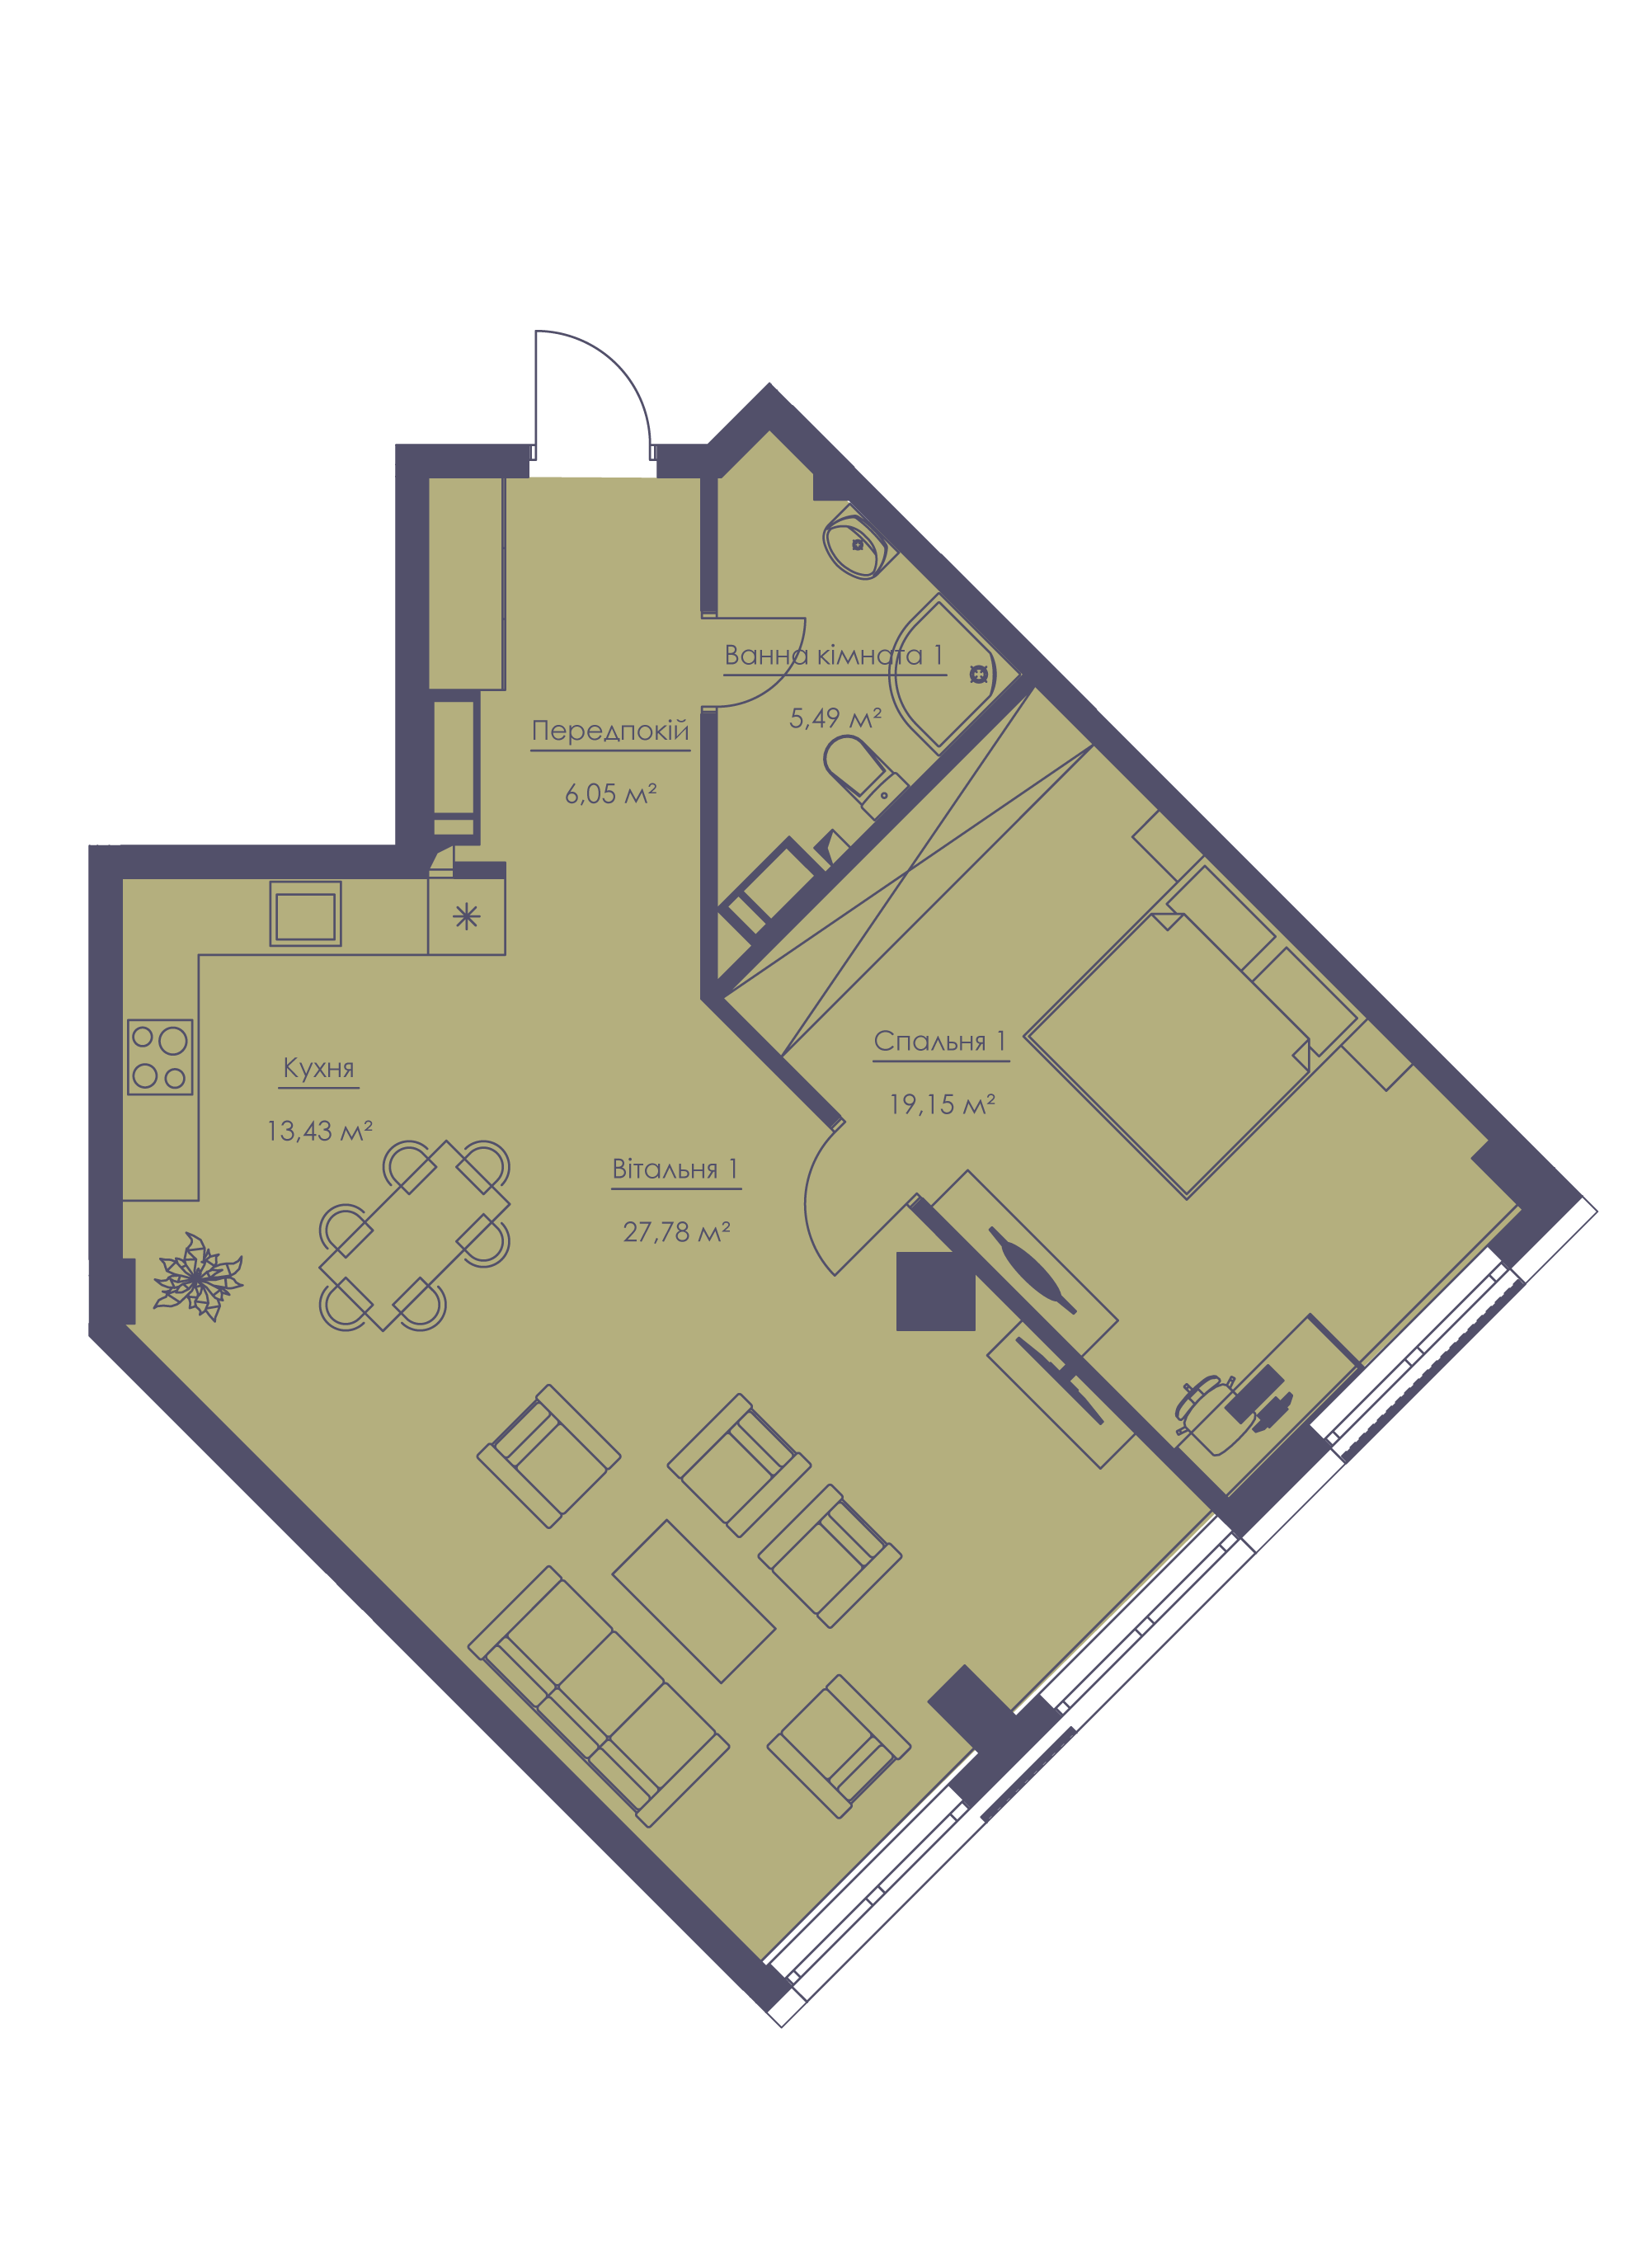 Apartment layout KV_69_2a_1_1_1-1